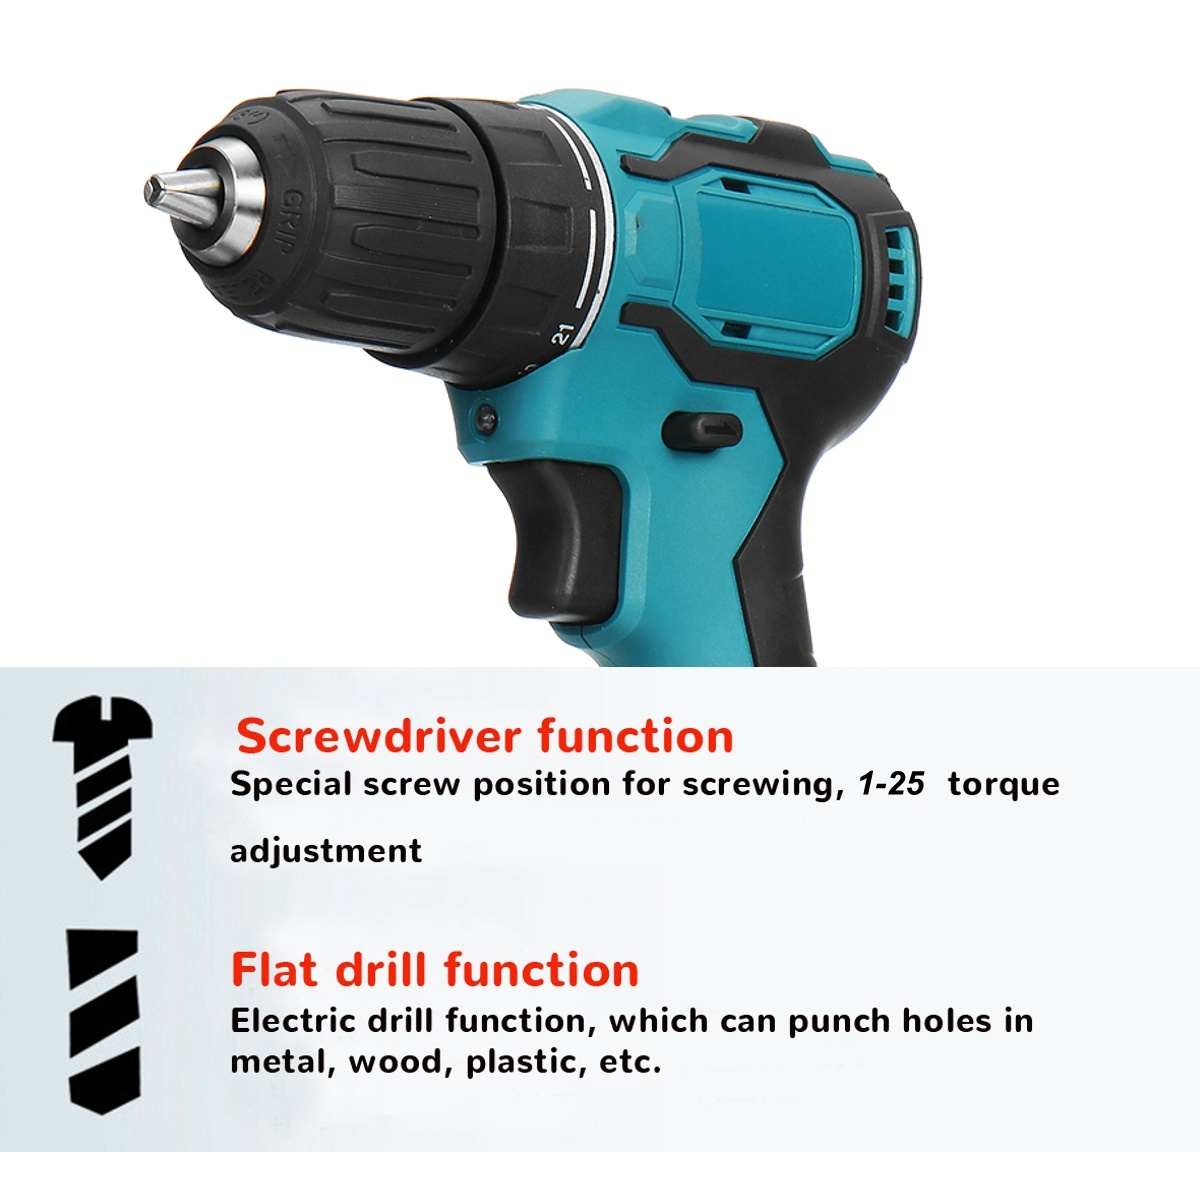 Tools : Cordless Brushless Drill Electric Screwdriver Electric Drill Power Driver Lithium-Ion Battery Mini Drilling Cordless Screwdriver